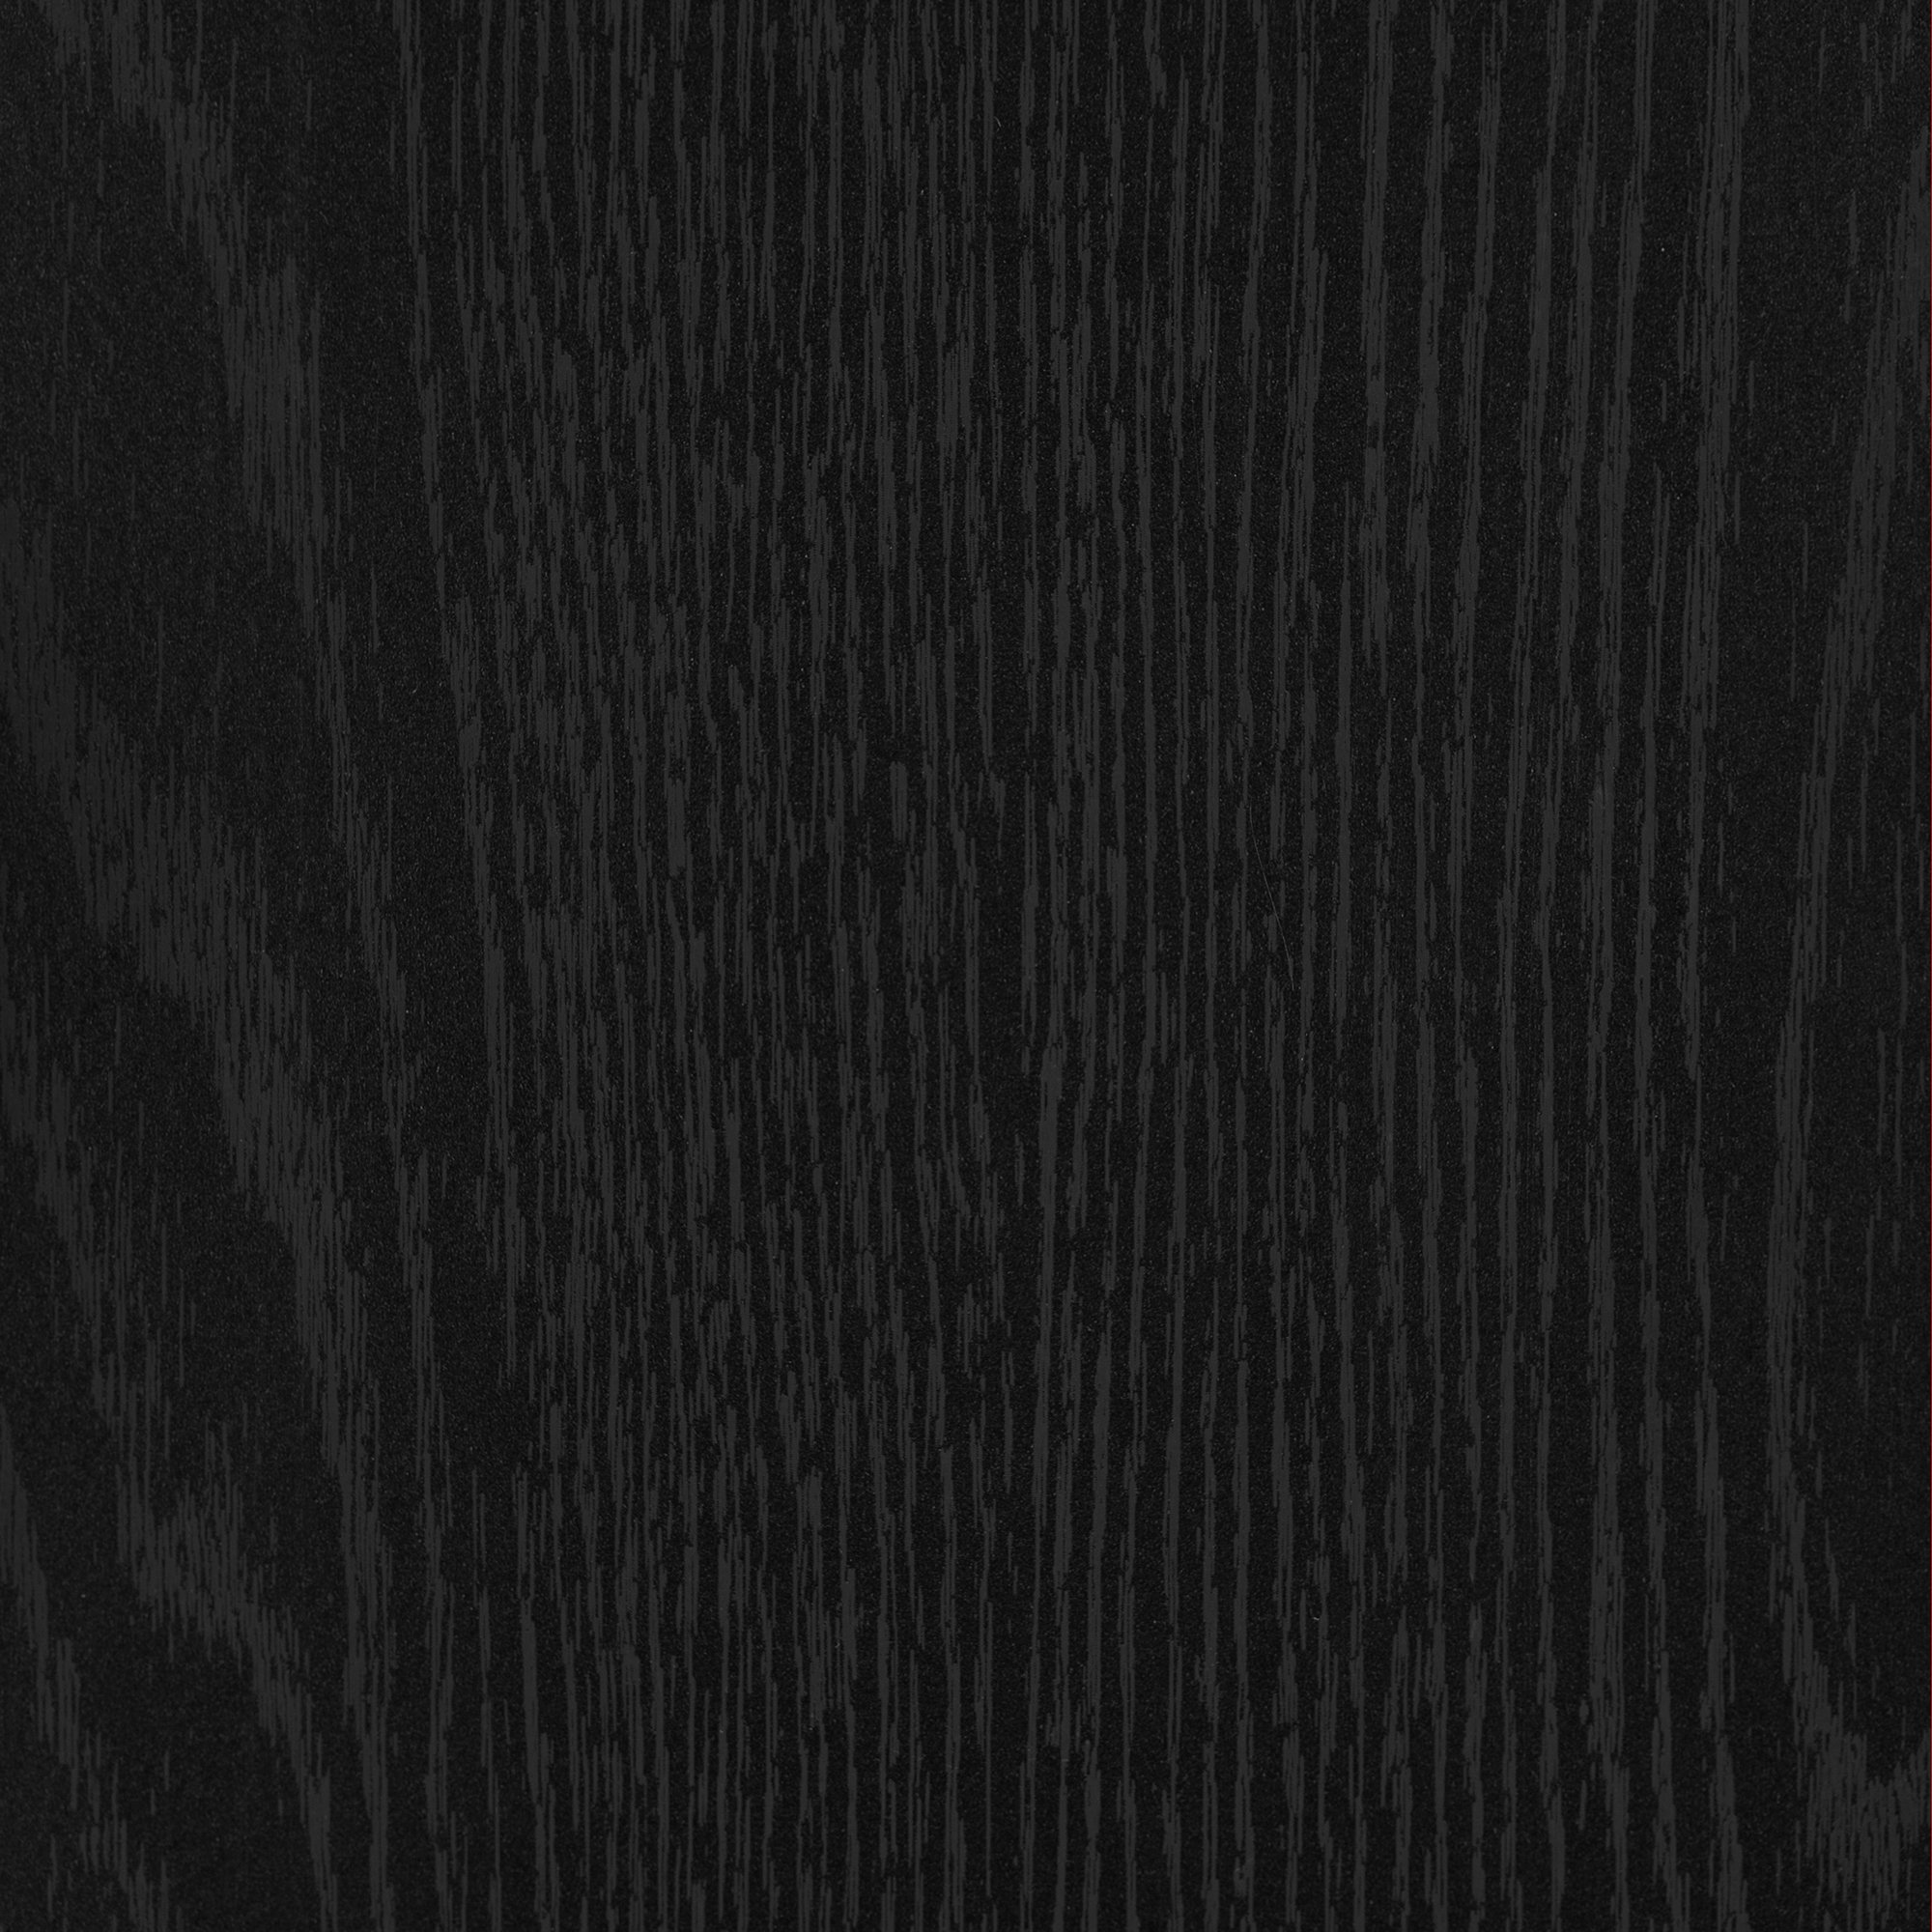 South Shore 11290 Holland Headboard (54/60''), Full/Queen, Black Oak by South Shore (Image #7)